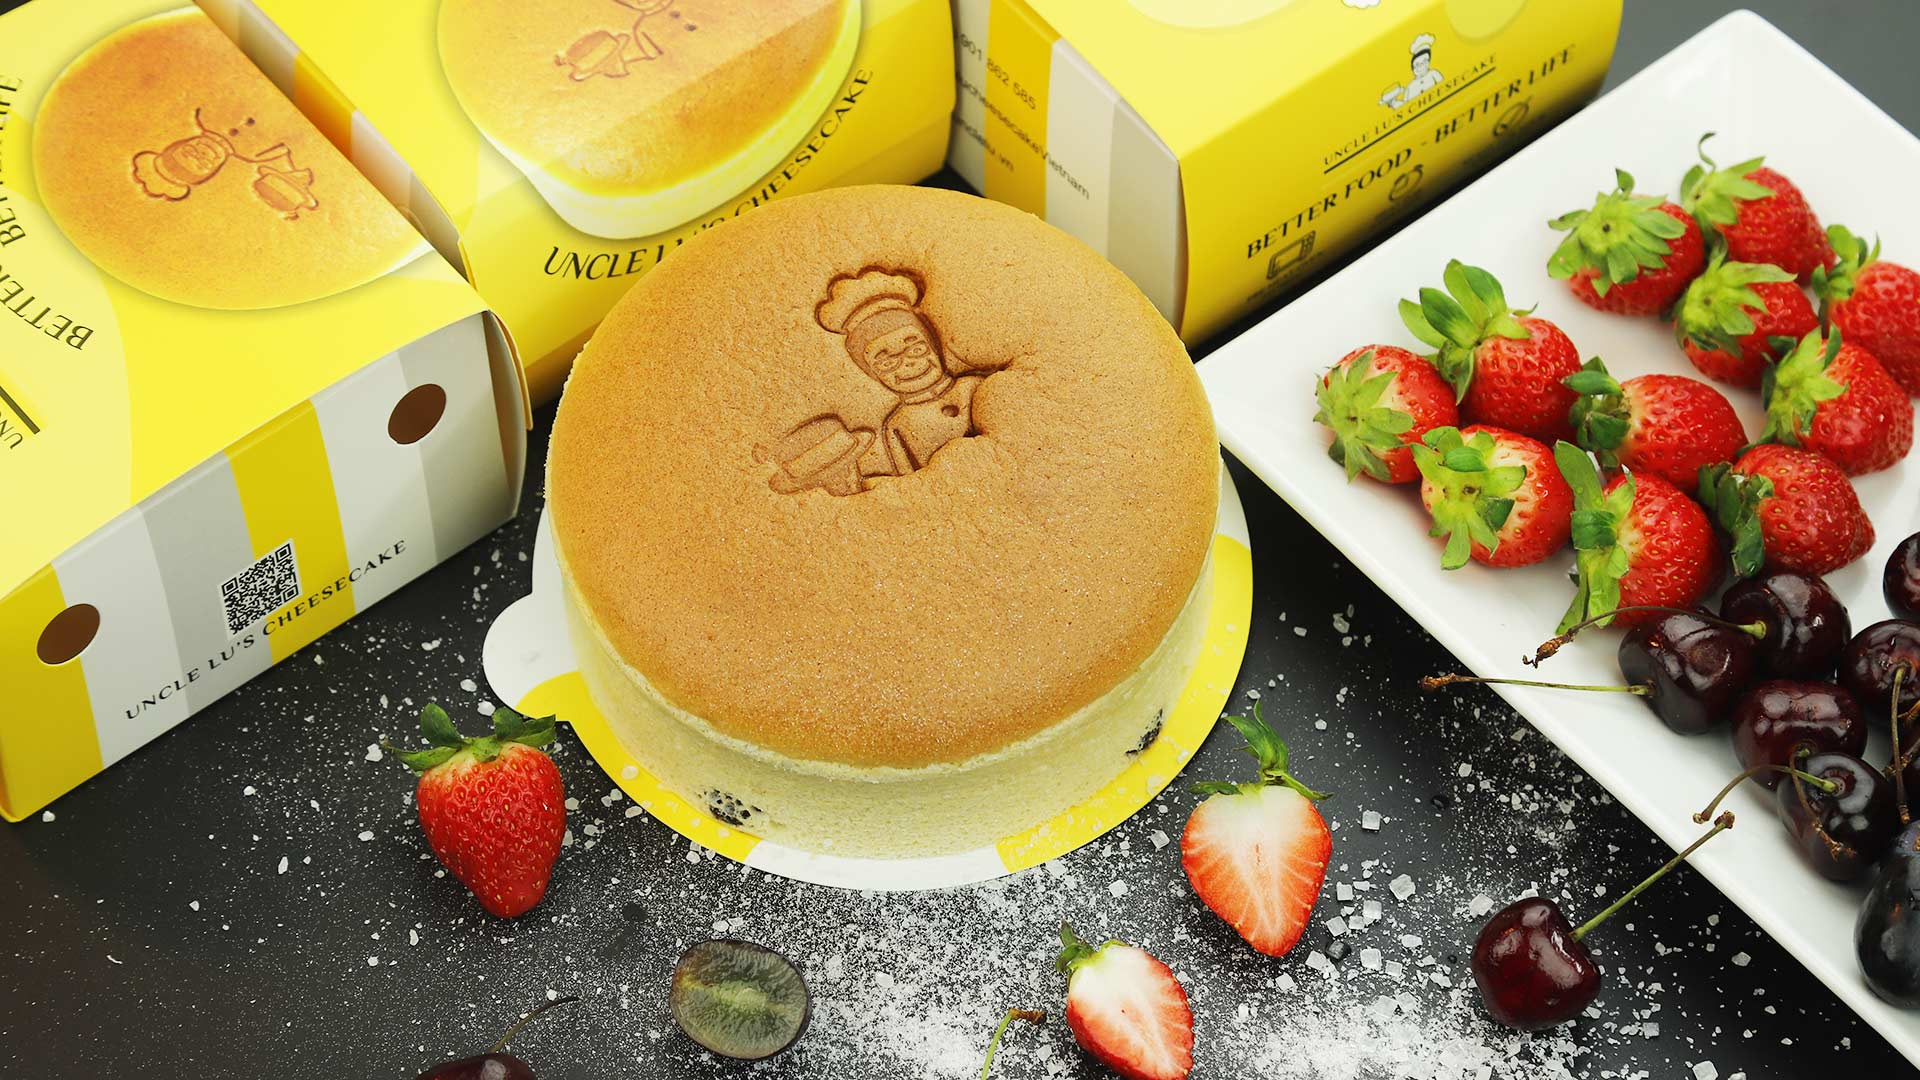 Uncle Lu's Cheesecake